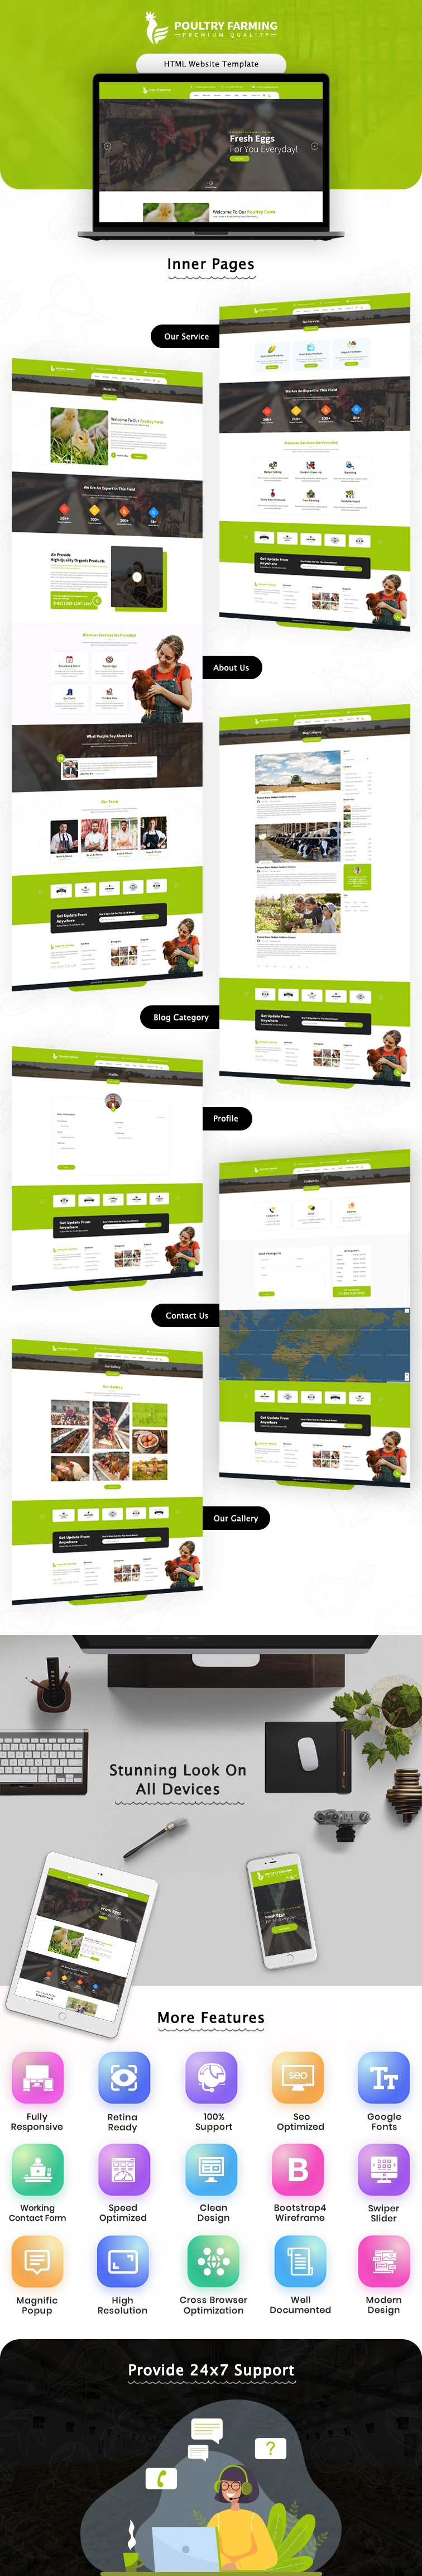 Poultry Farming HTML Website Template